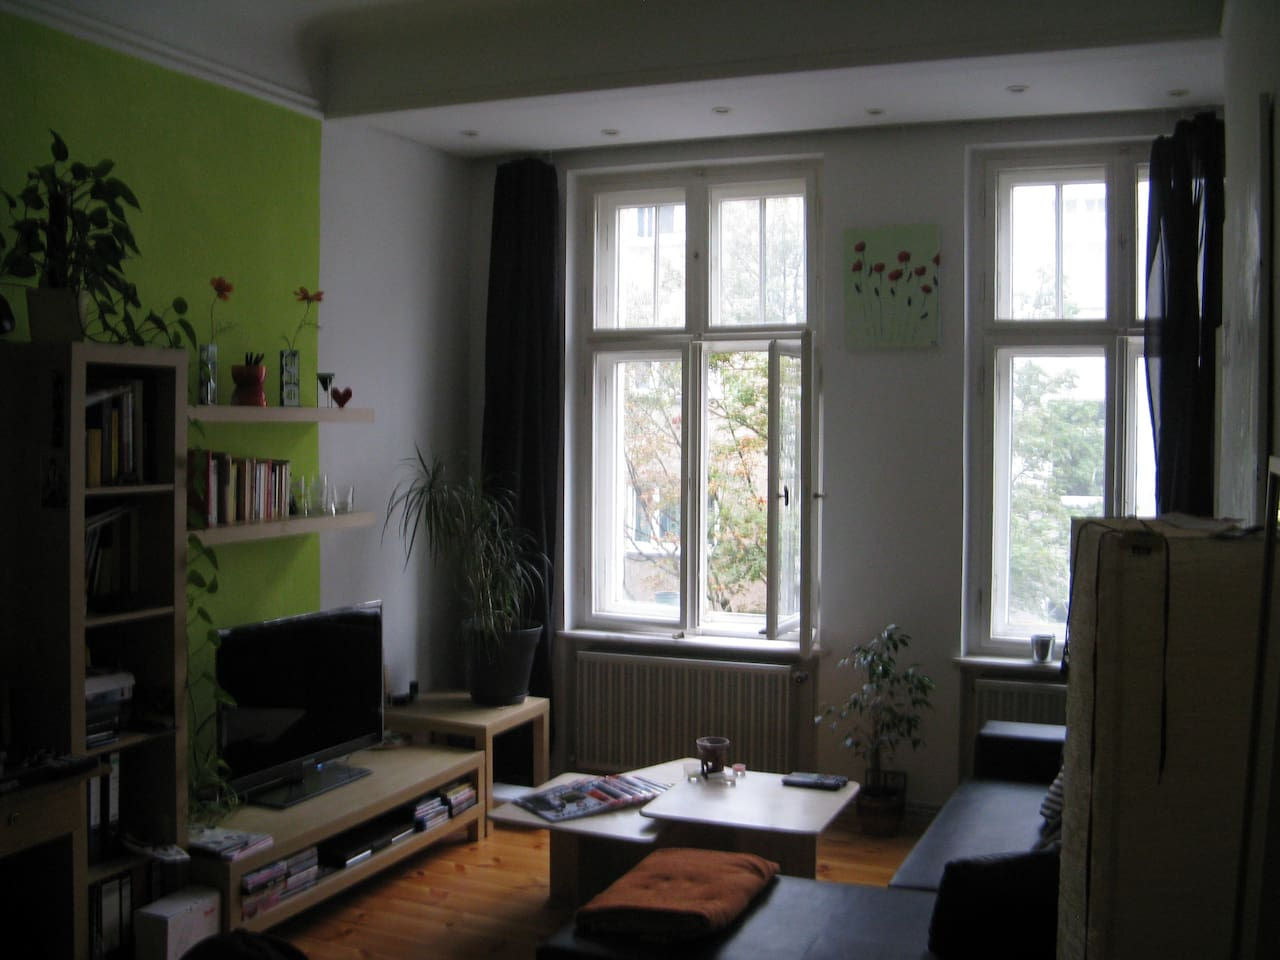 Seating area of the room, big windows